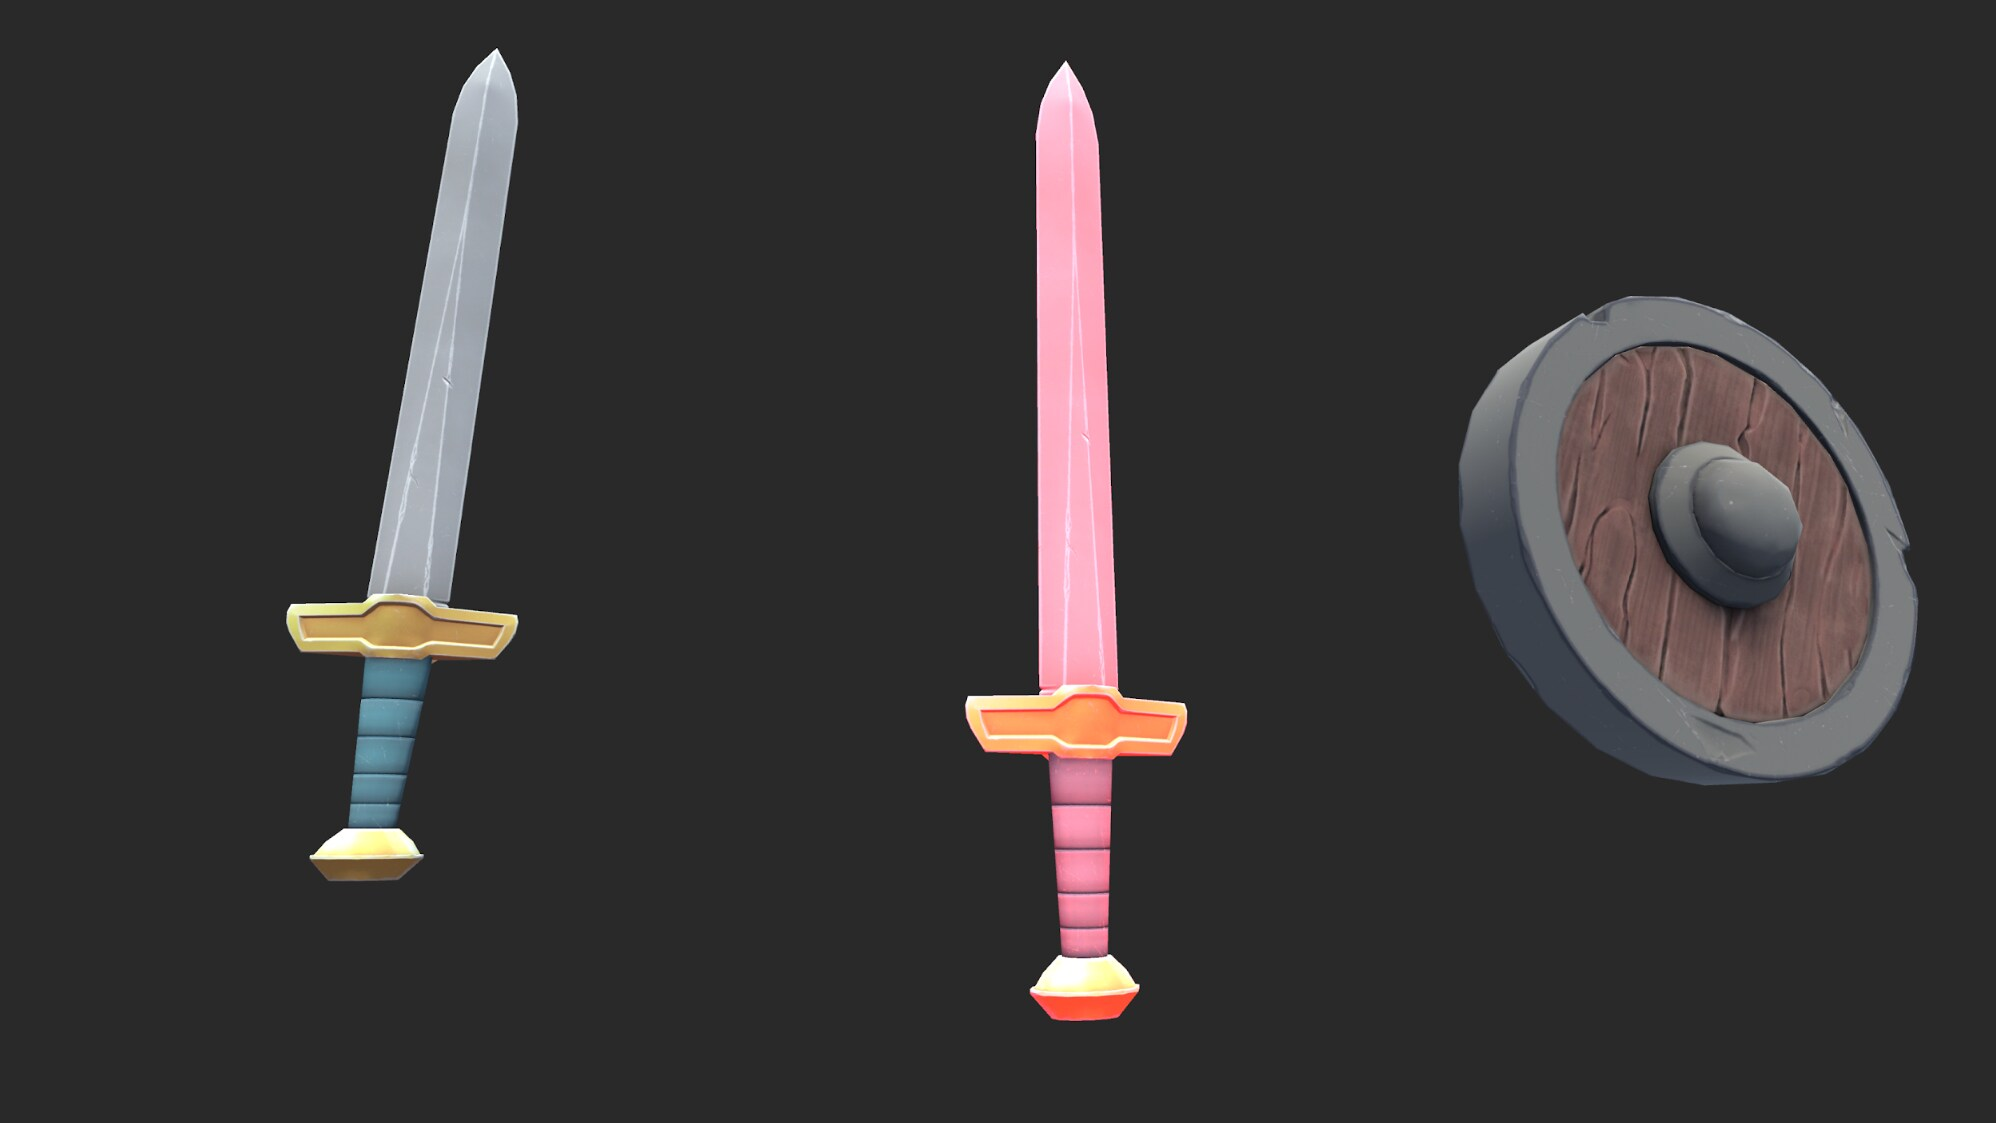 A silver/grey sword is on the left, a pink sword is in the middle and a wooden/brown and silver/grey circular shield is on the right. The background is black.